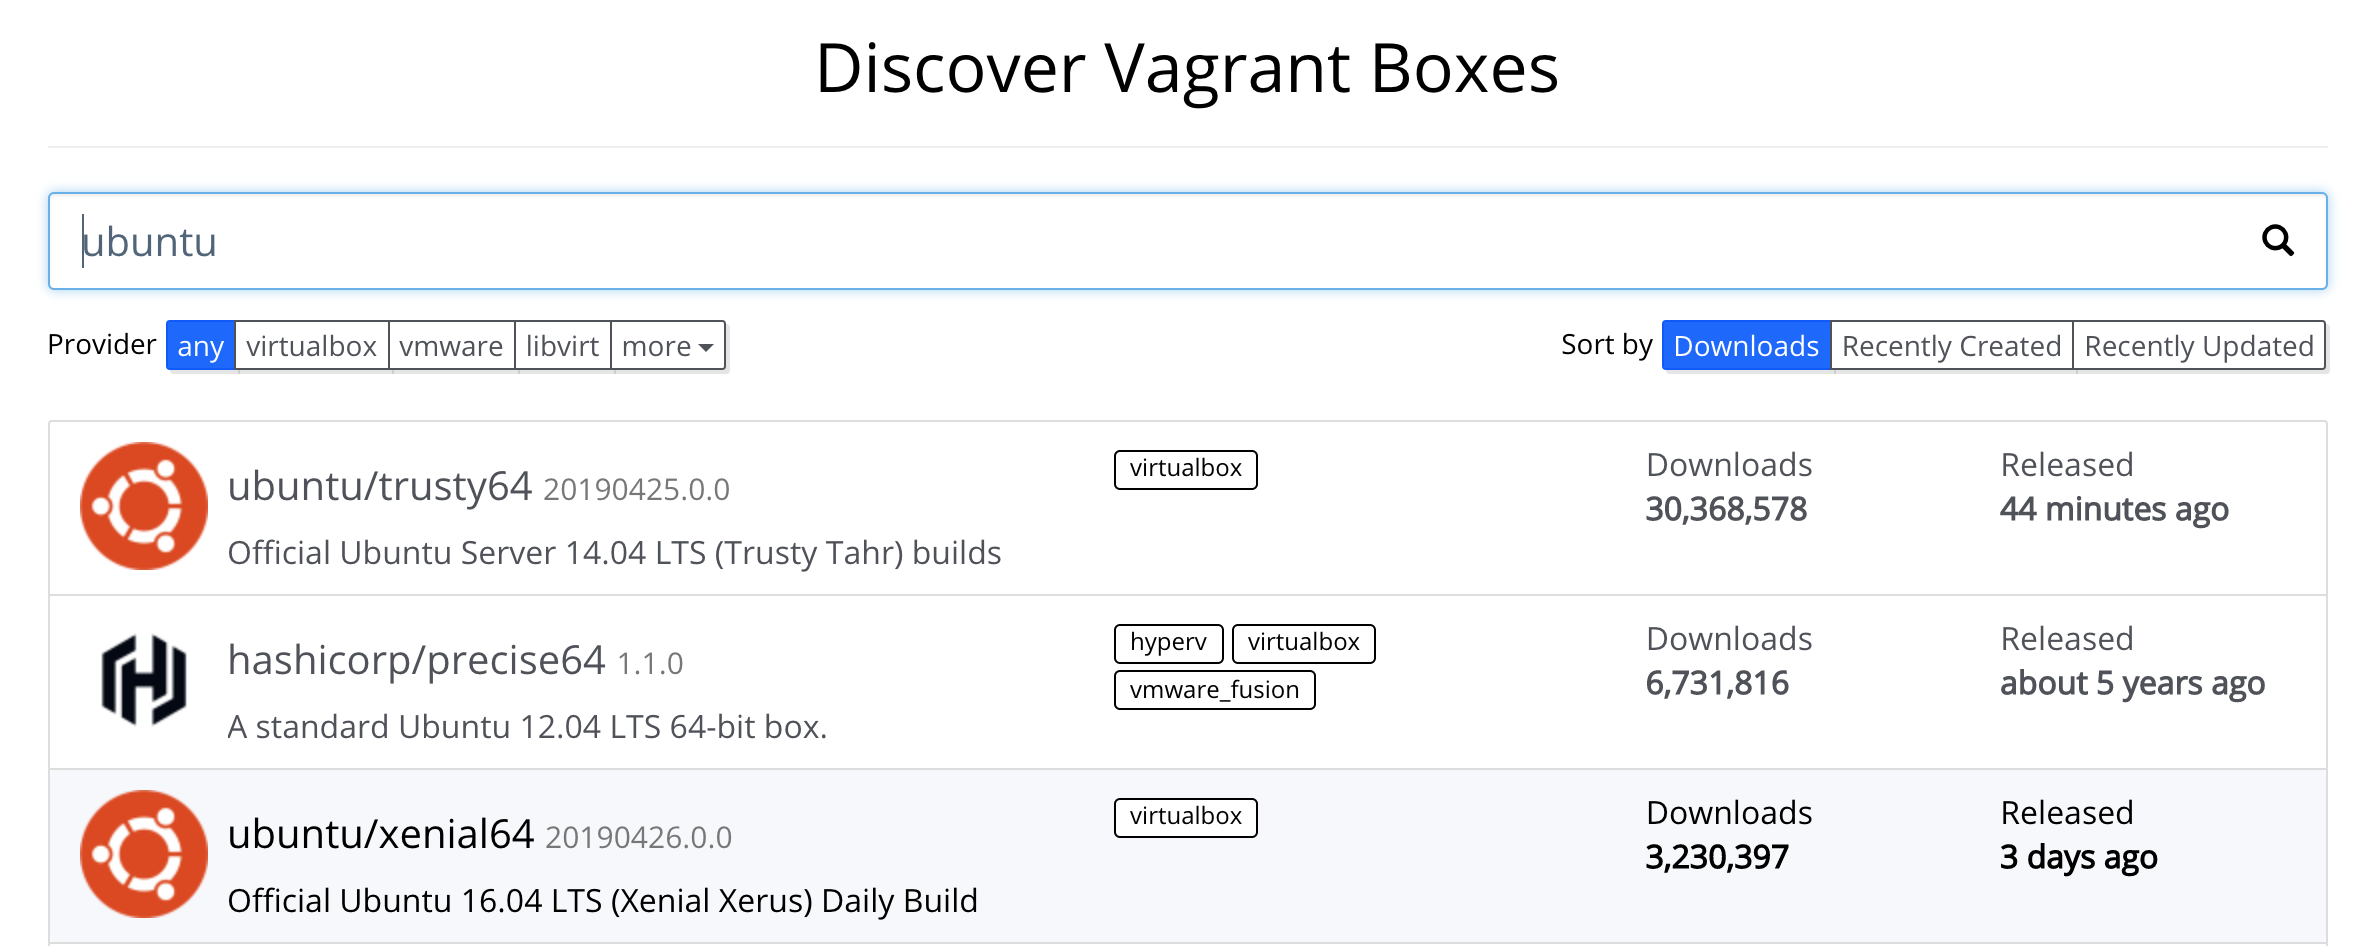 Discover Vagrant Boxes